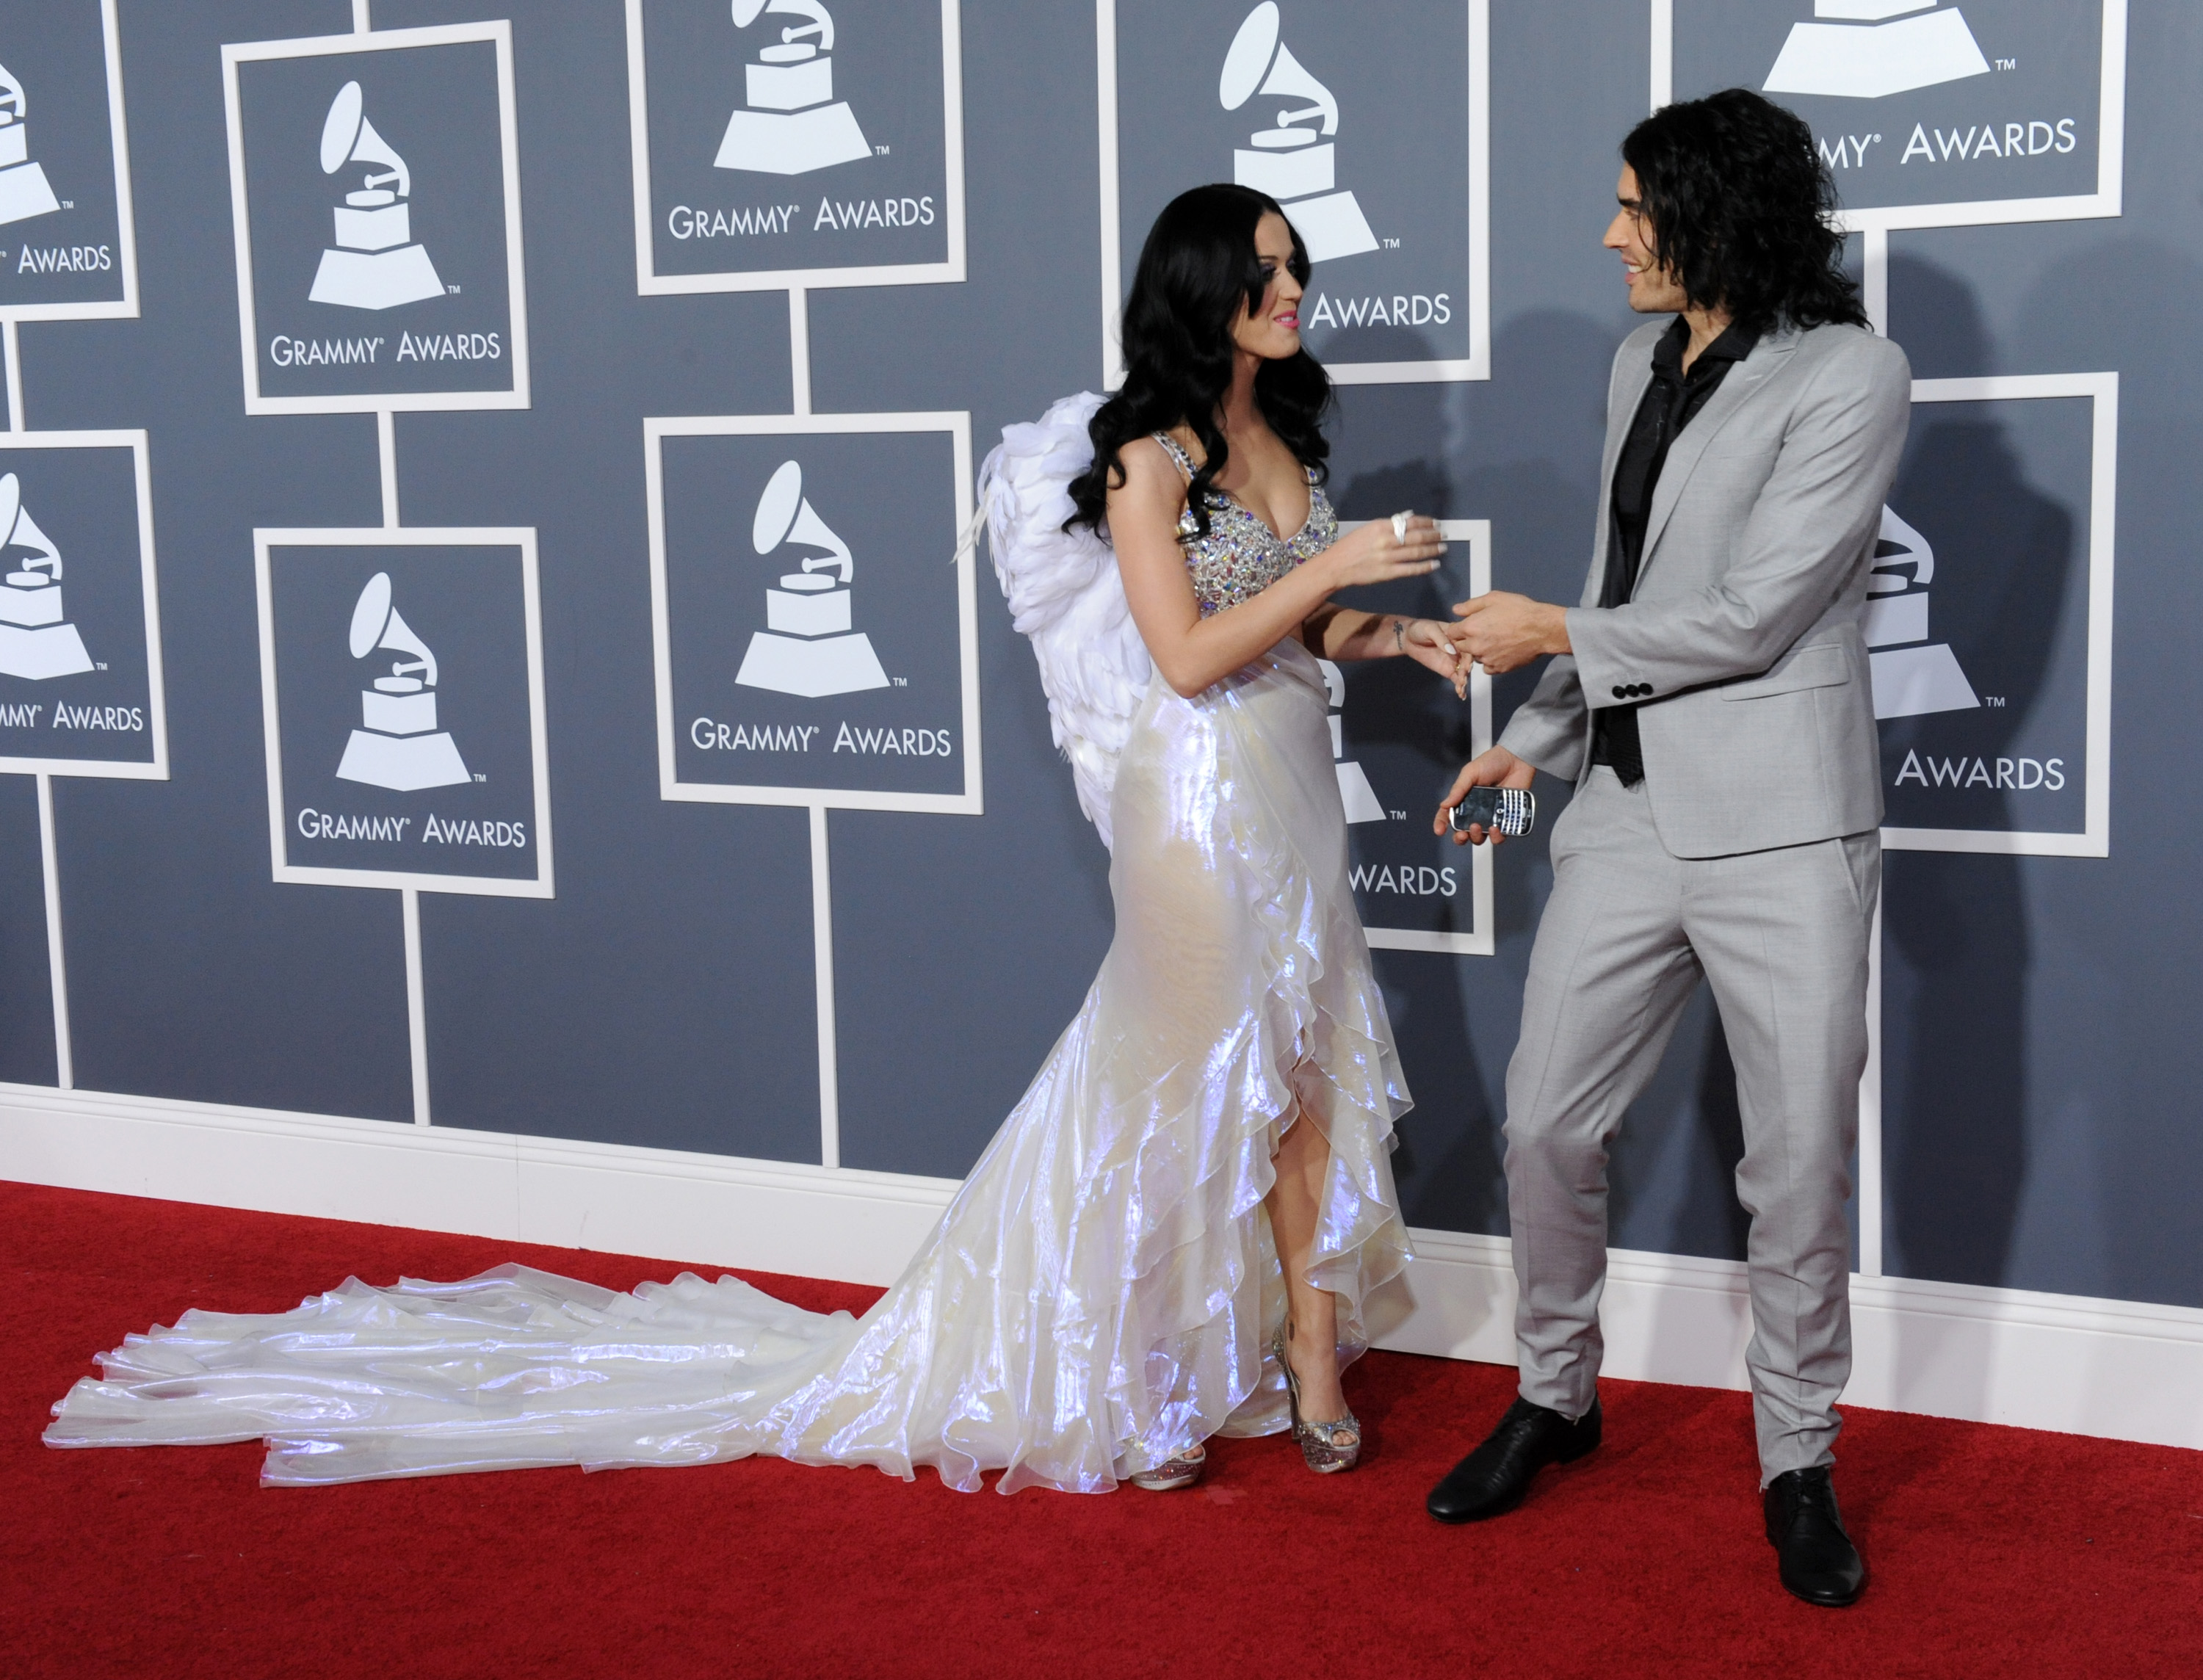 Katy Perry greets husband Russell Brand at the 53rd annual Grammy Awards in Los Angeles